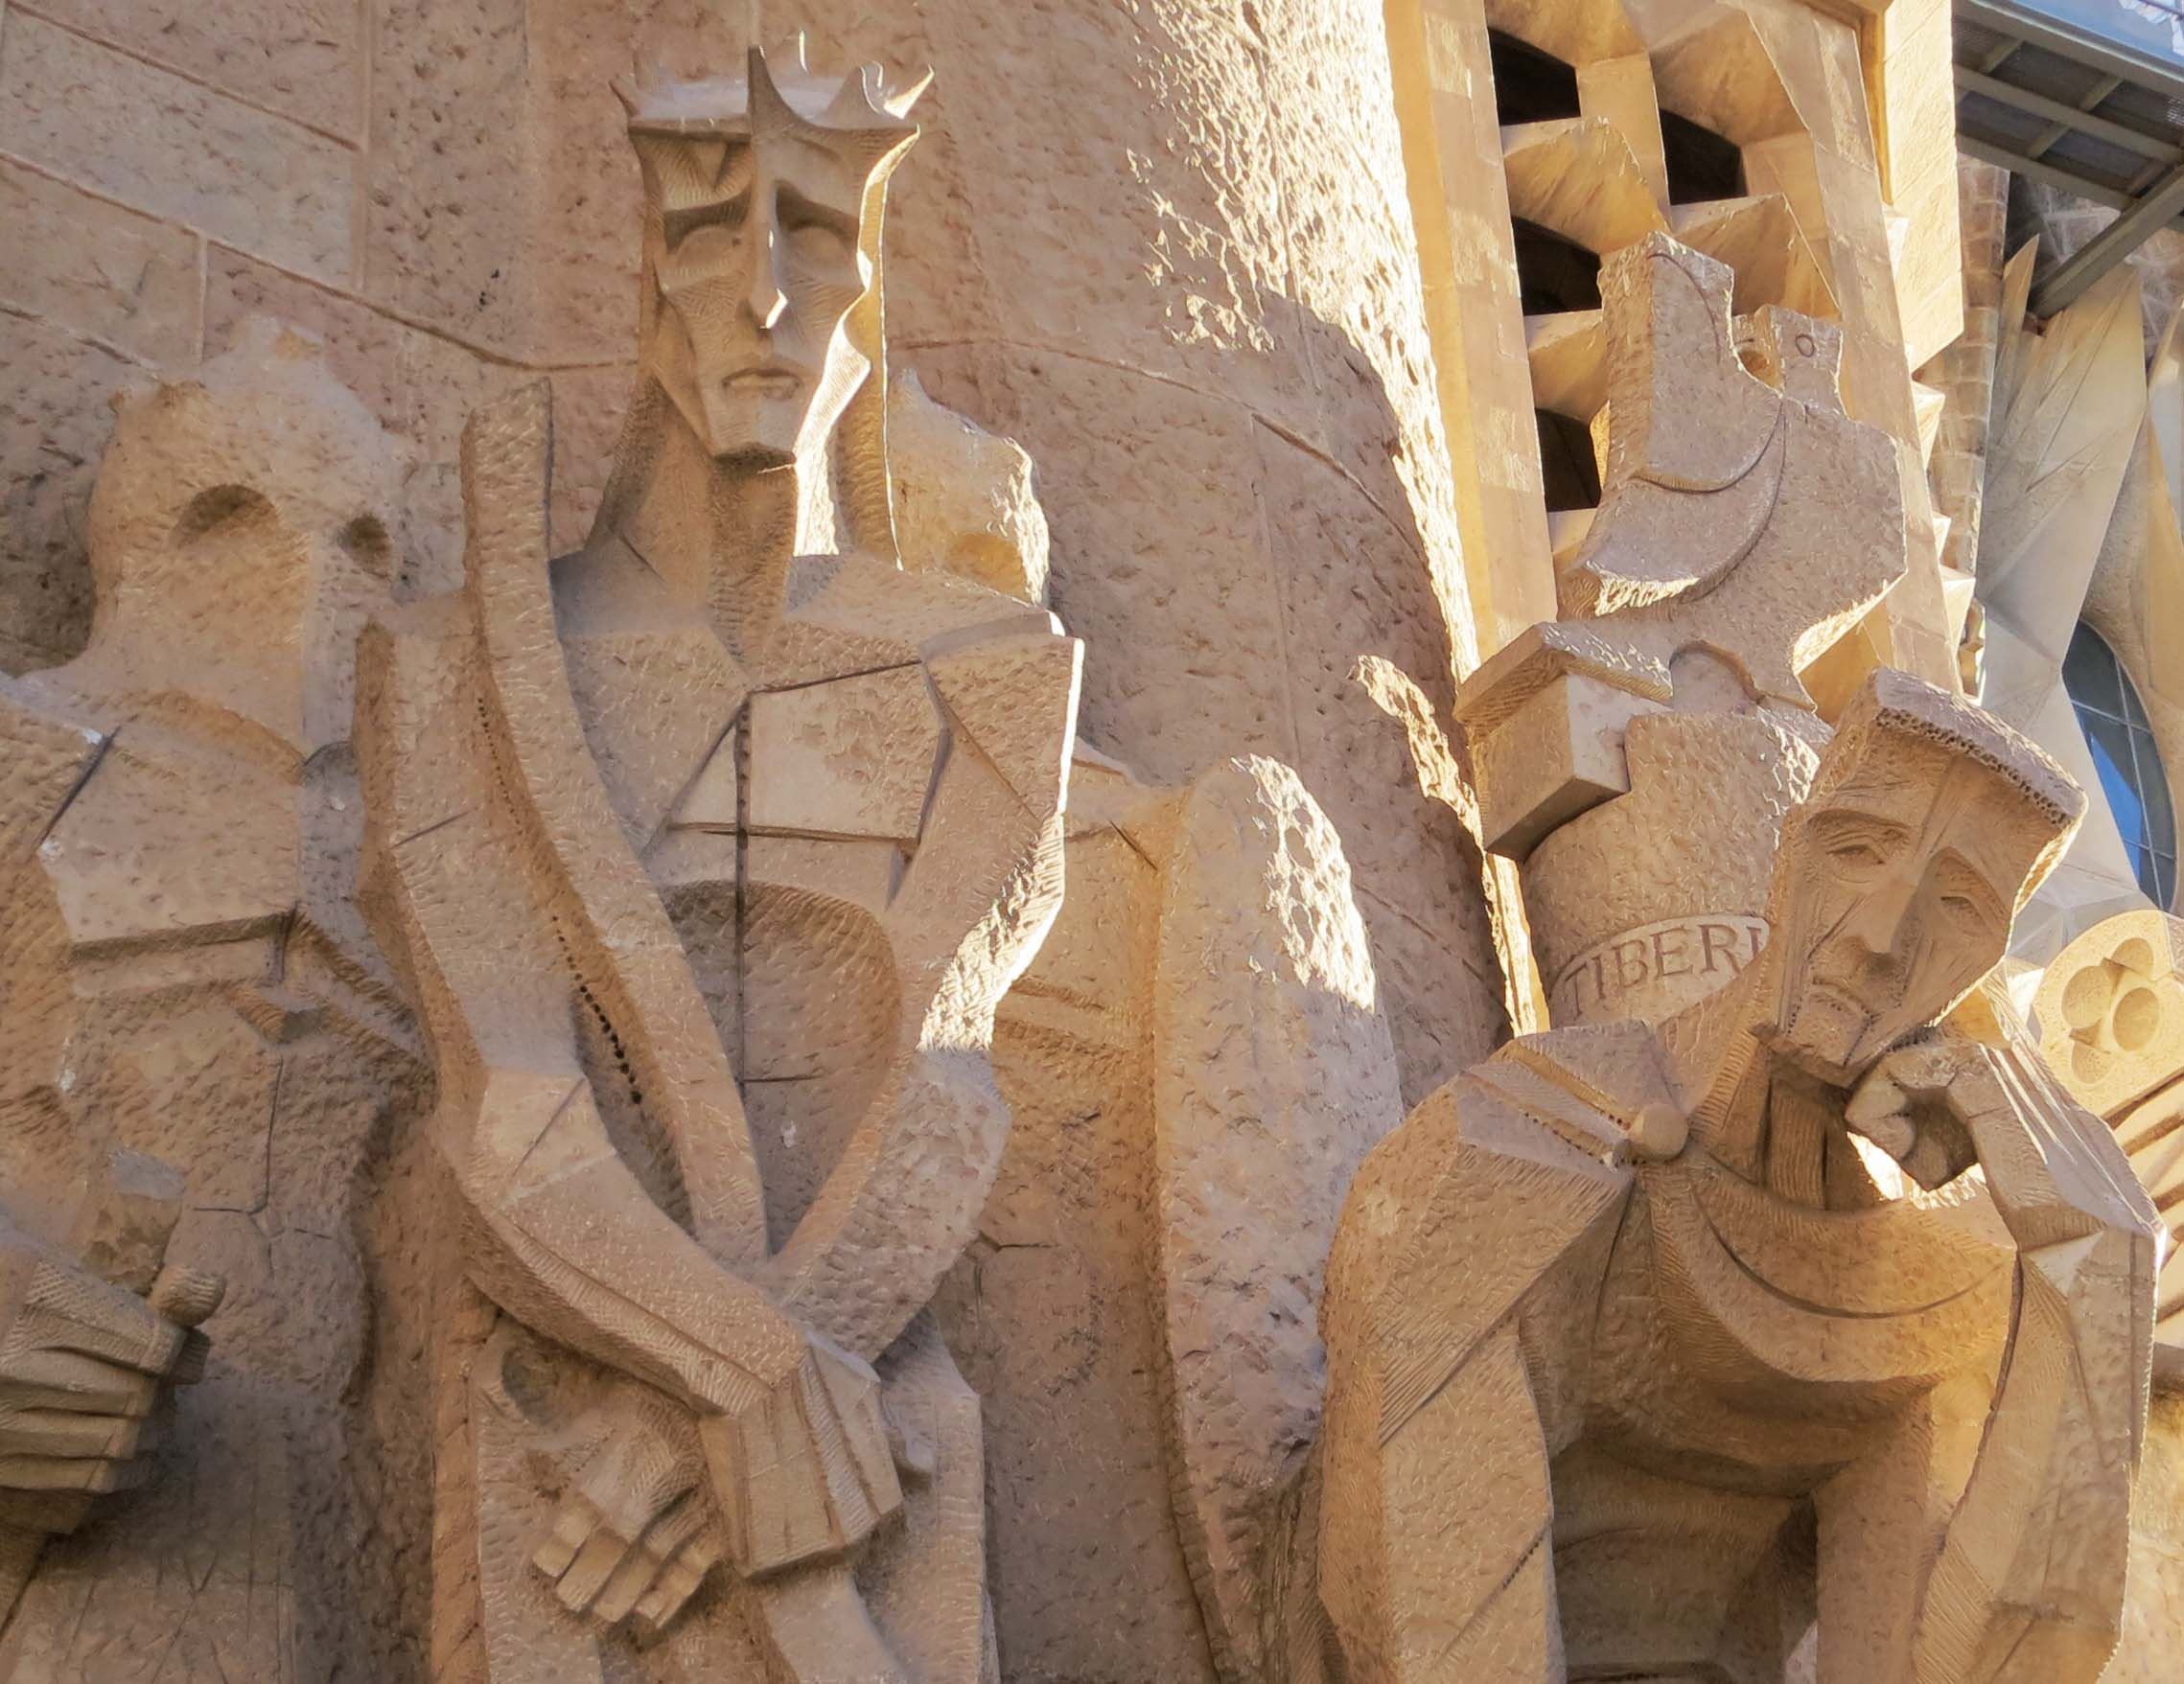 Subirachs sculptures on Sagrada Familia in Barcelona.